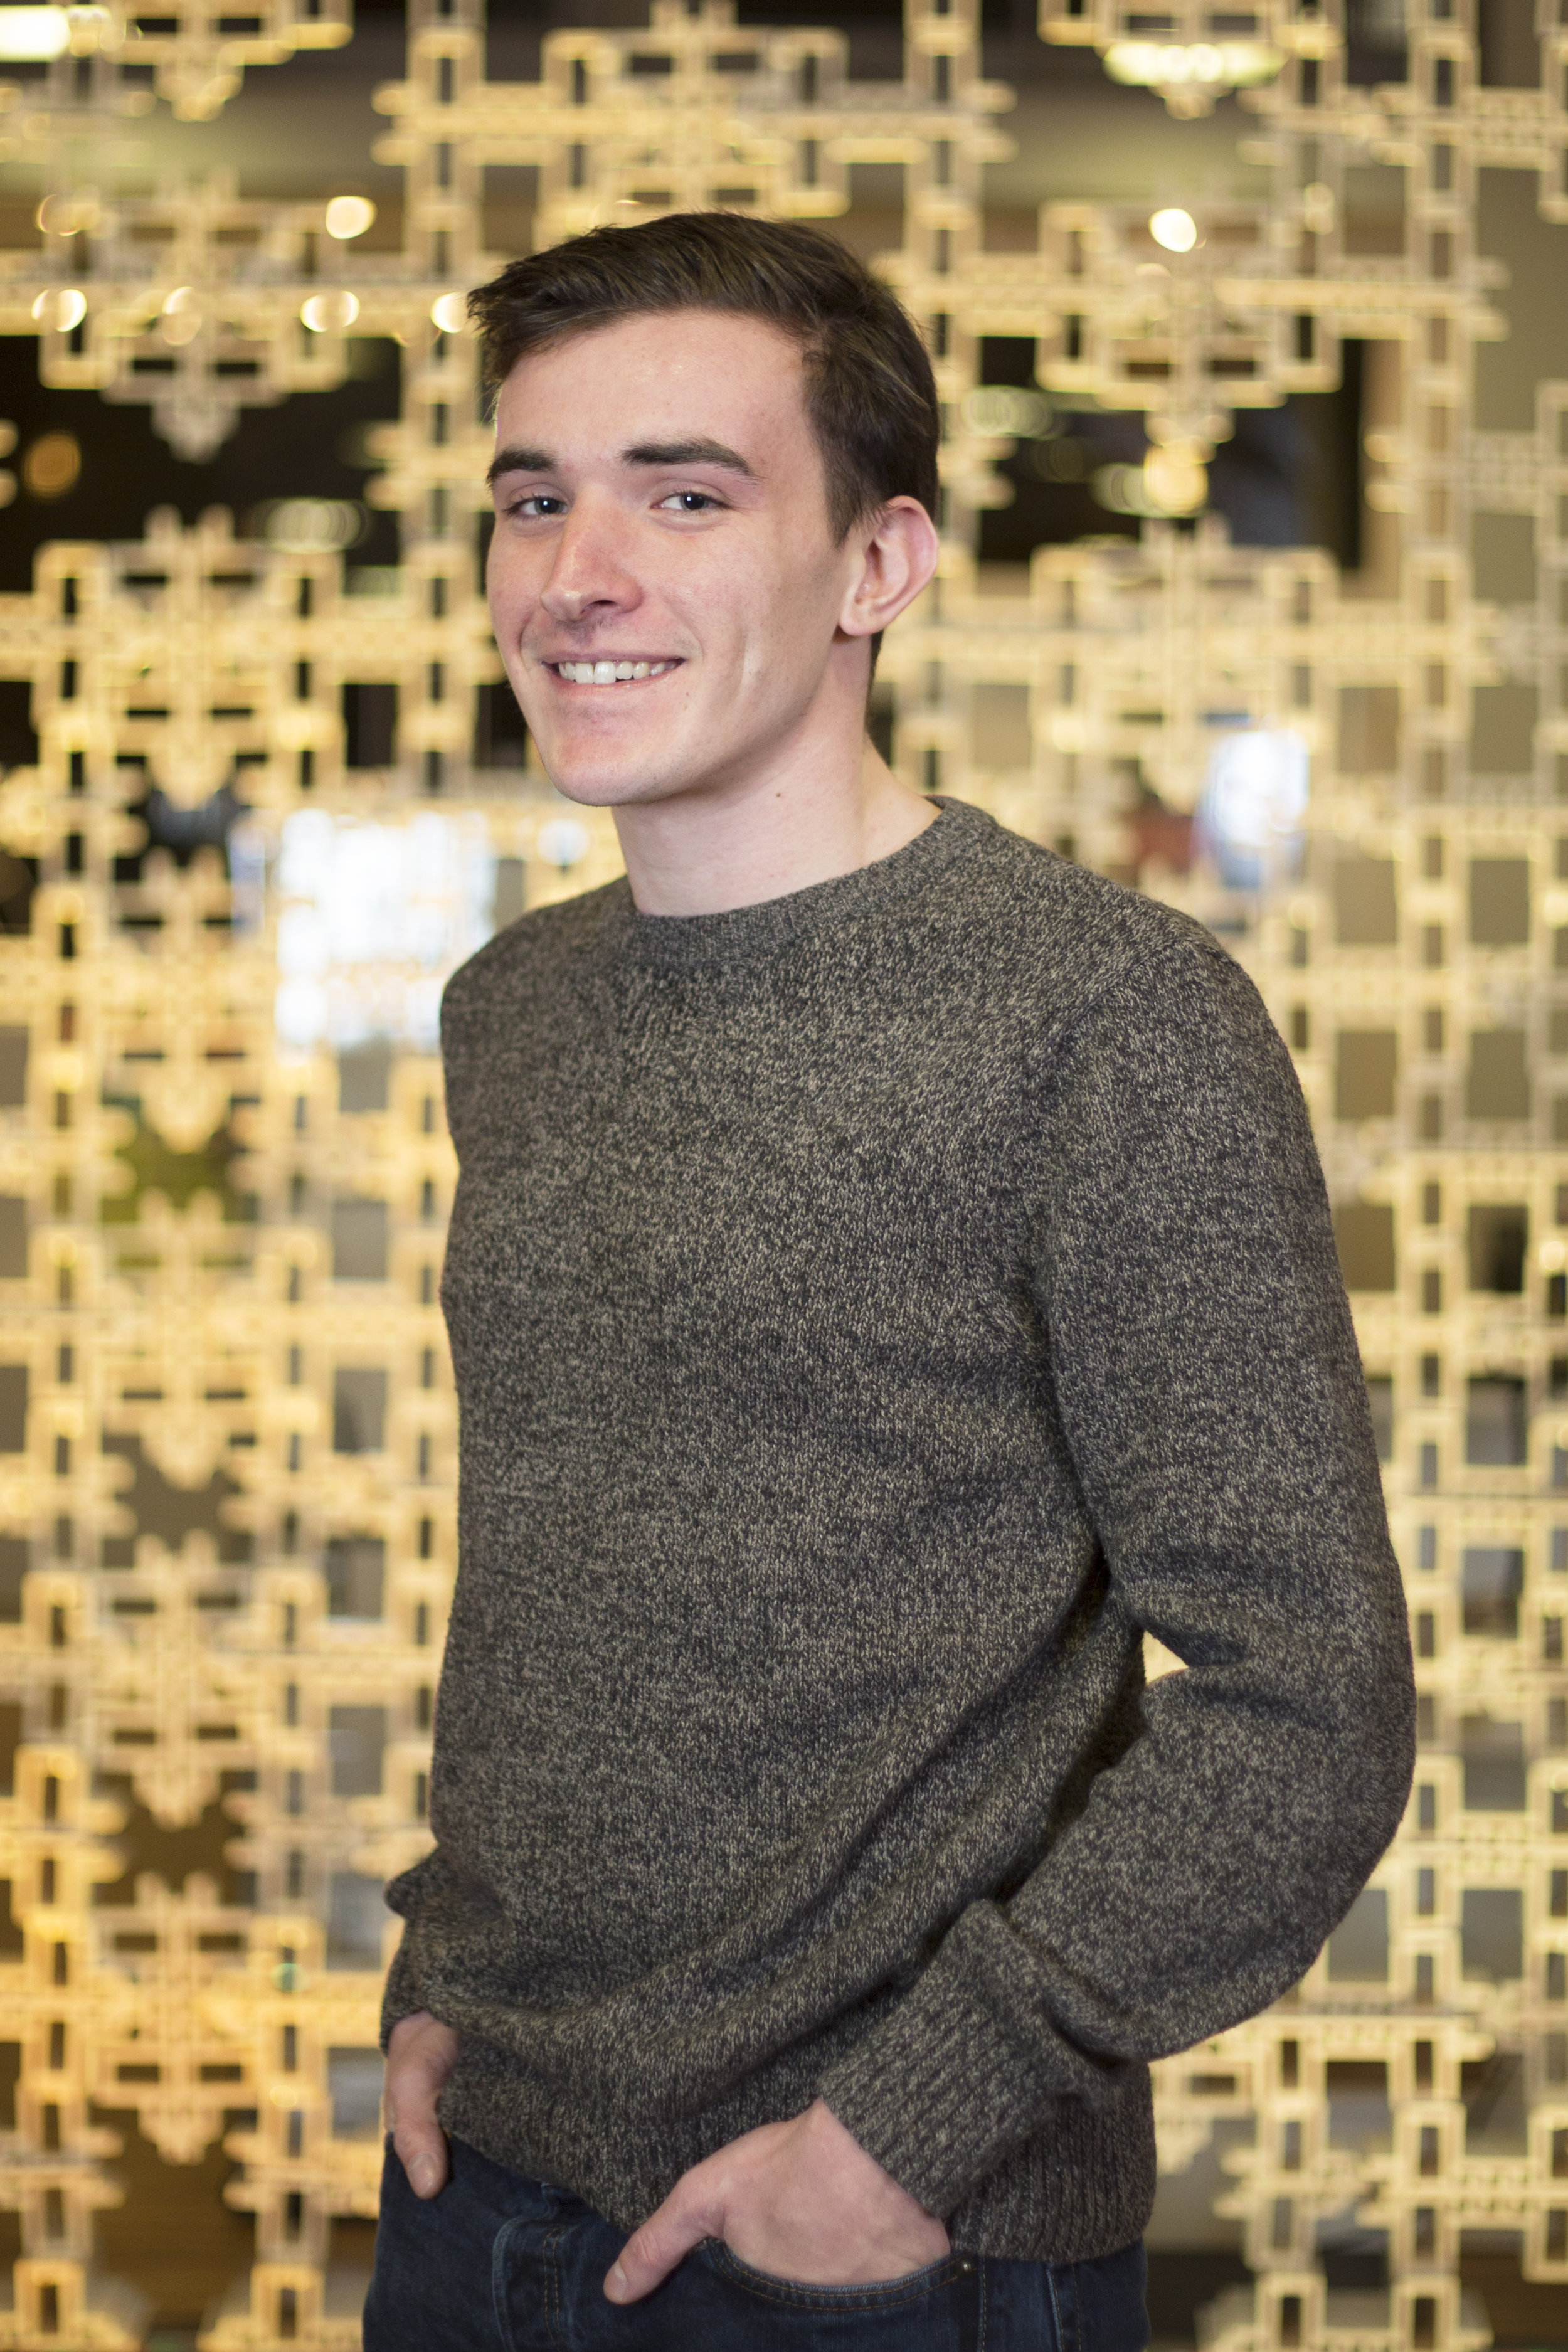 Connor McCabe - Co-DirectorConnor has been working with BRIC since 2015 and has since received his Bachelor's of Science in Architecture from Temple University in 2017. He has worked with renowned design activists such as Pepon Osorio, Lily Yeh, and Ekene Ijeoma on community related design interventions. During his time with BRIC Connor has been heavily involved with directing the Sharing Stories project and continuing the Stadium Talk research.